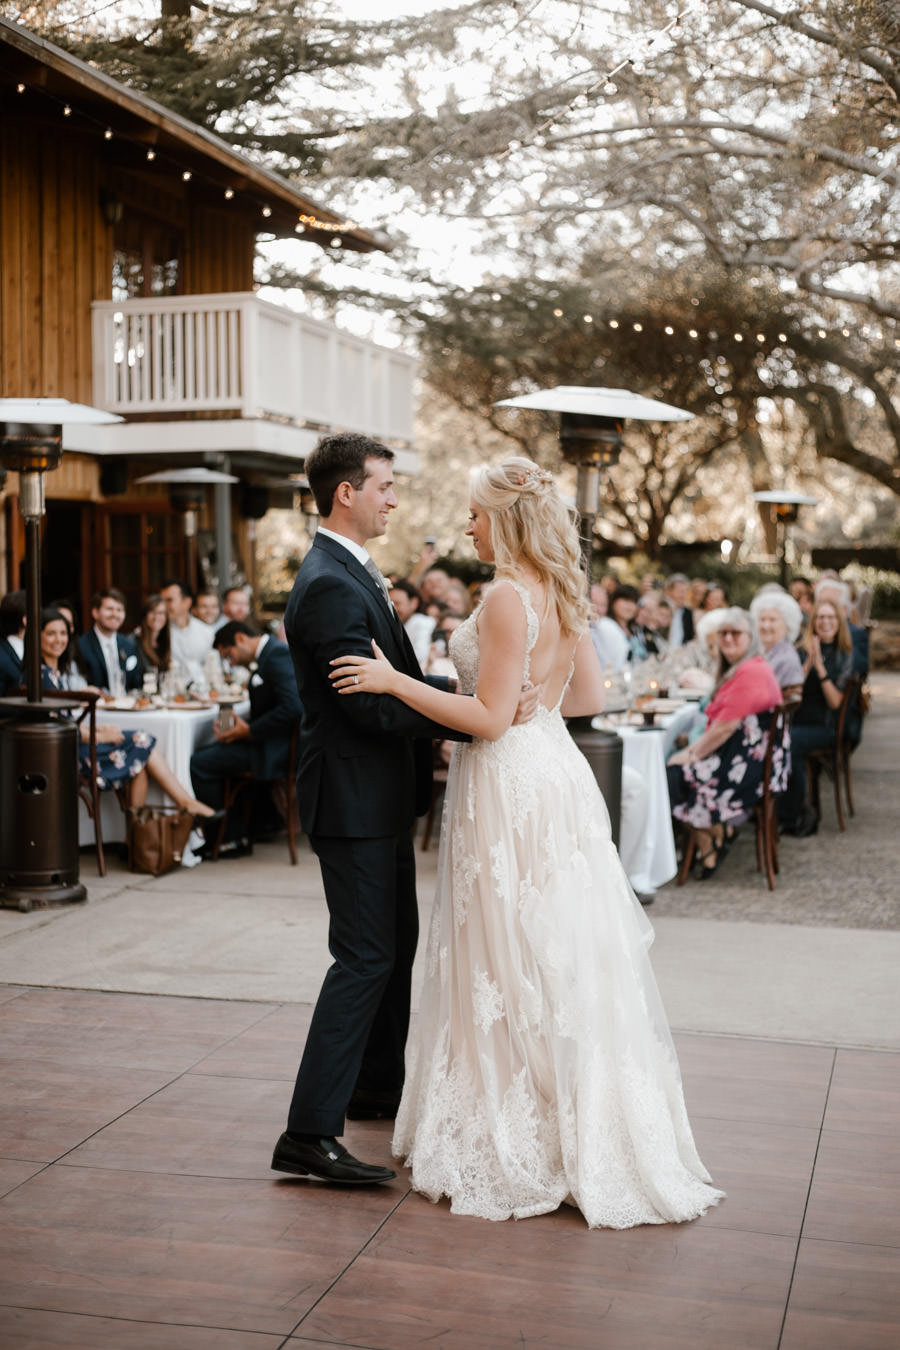 bride and groom first dance with loved ones on the background